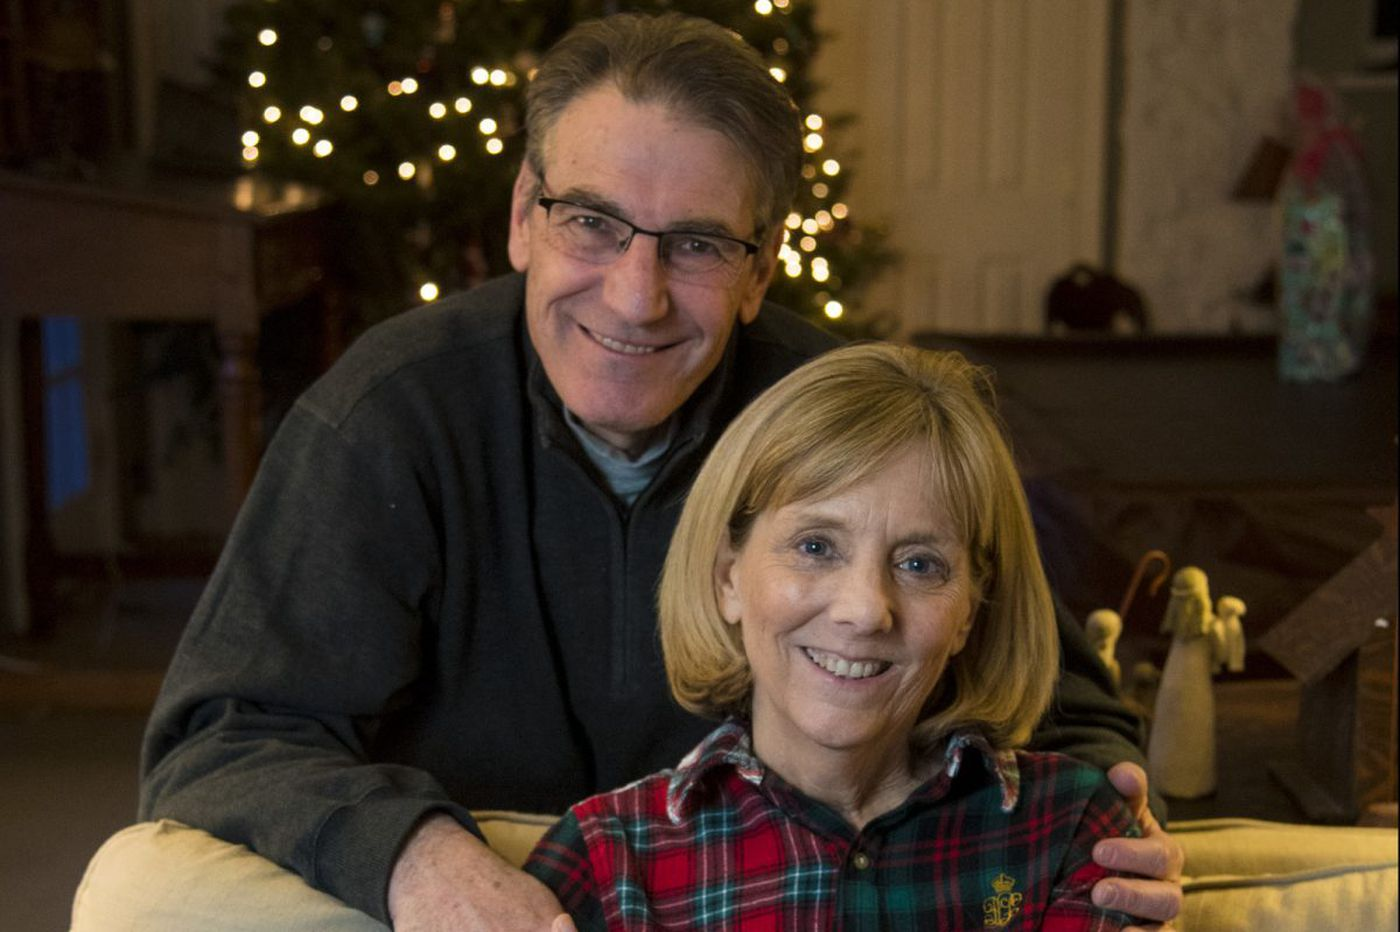 'Is this my last Christmas?' After battling cancer - twice - Wayne couple help others cope